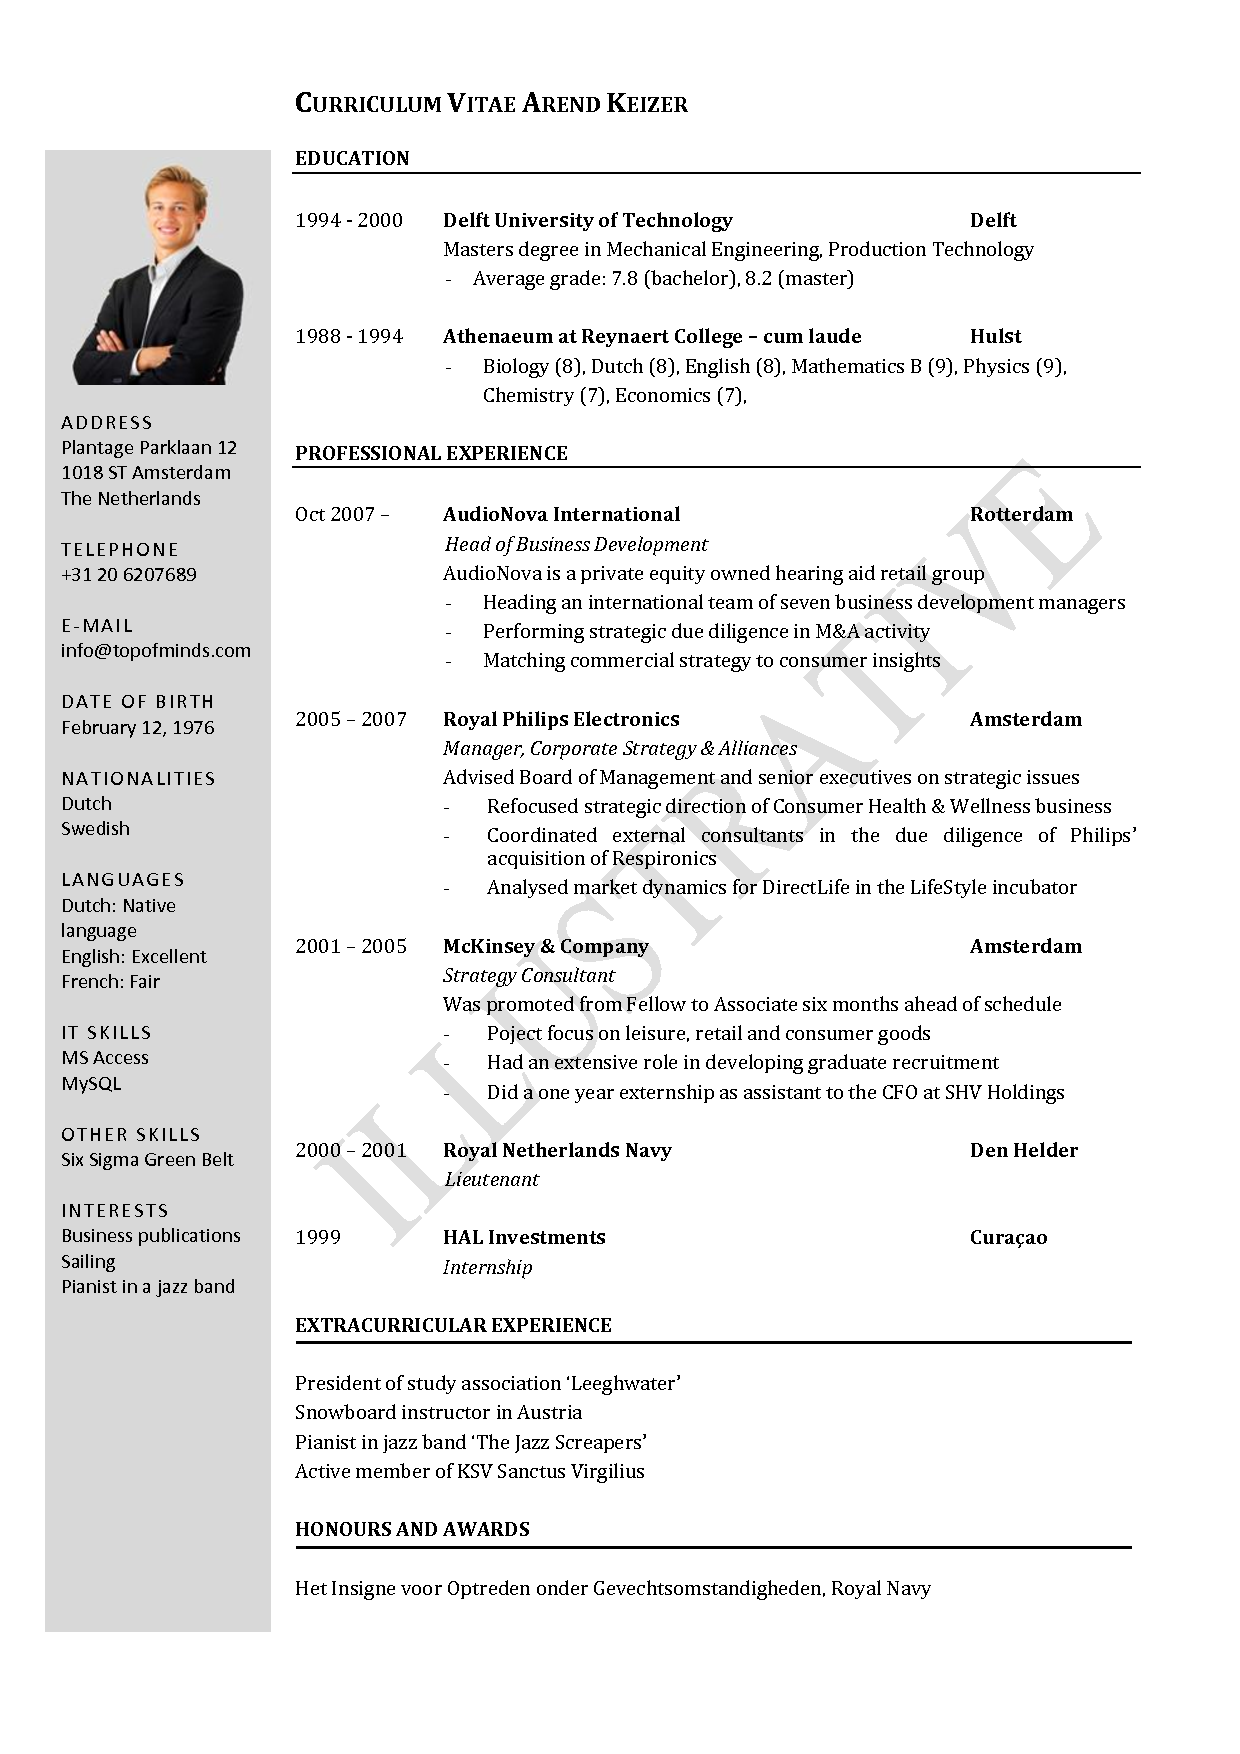 cv template university student google search cv templates do you need to write your own cv curriculum viate or resume here you will some templates tips and advices to write the perfect cv